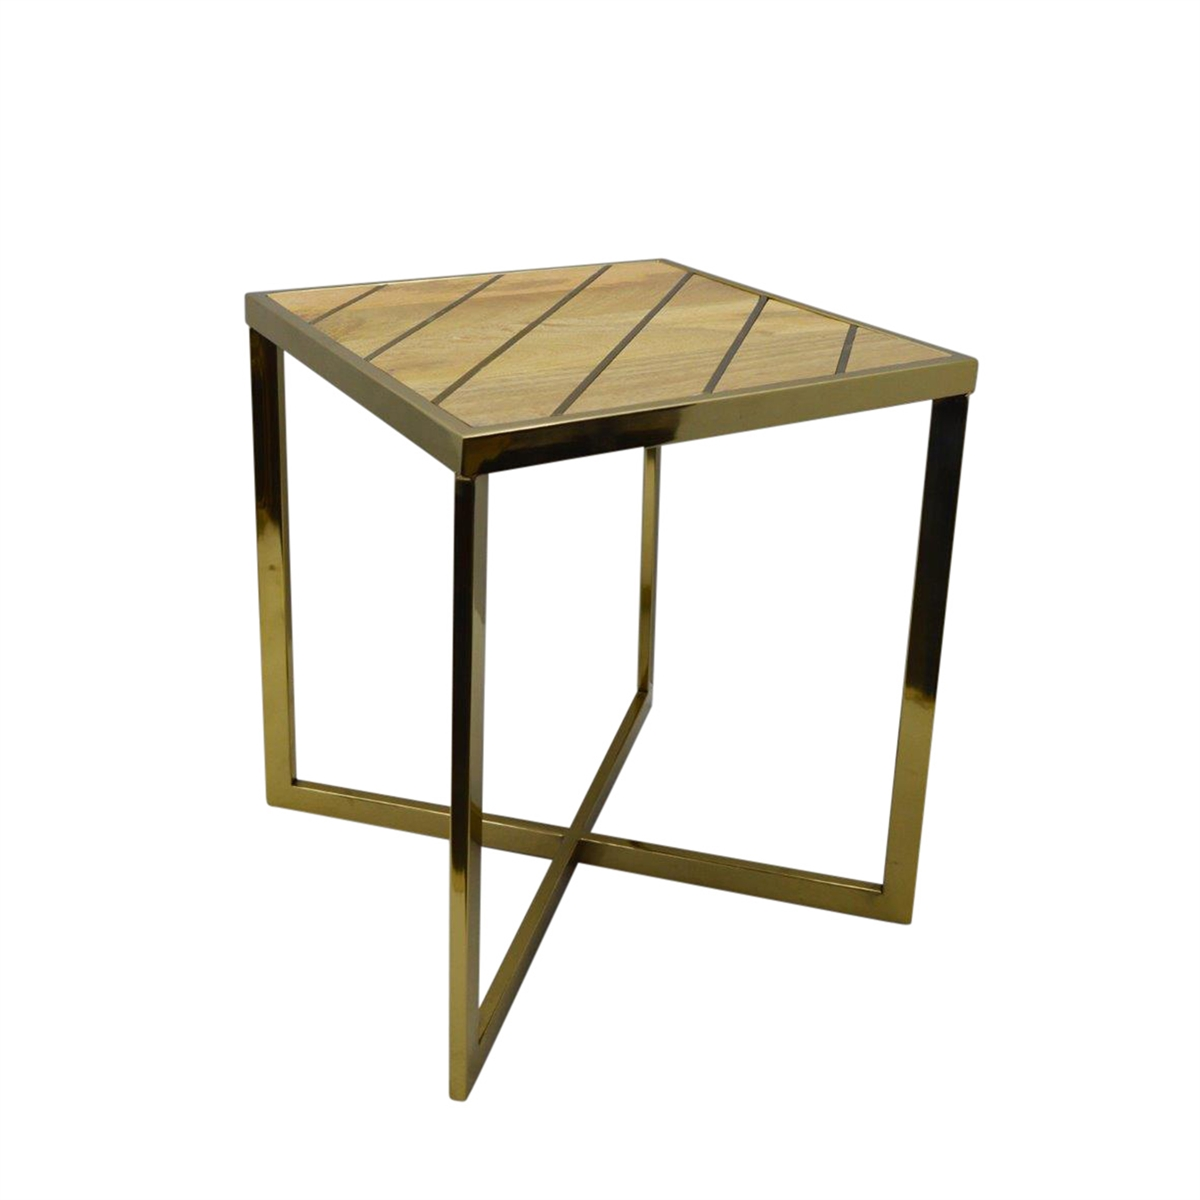 steel wooden rectangular top metal inlay accent table wood log for pricing and availability edington patio furniture living room tables white folding outdoor side entryway pub